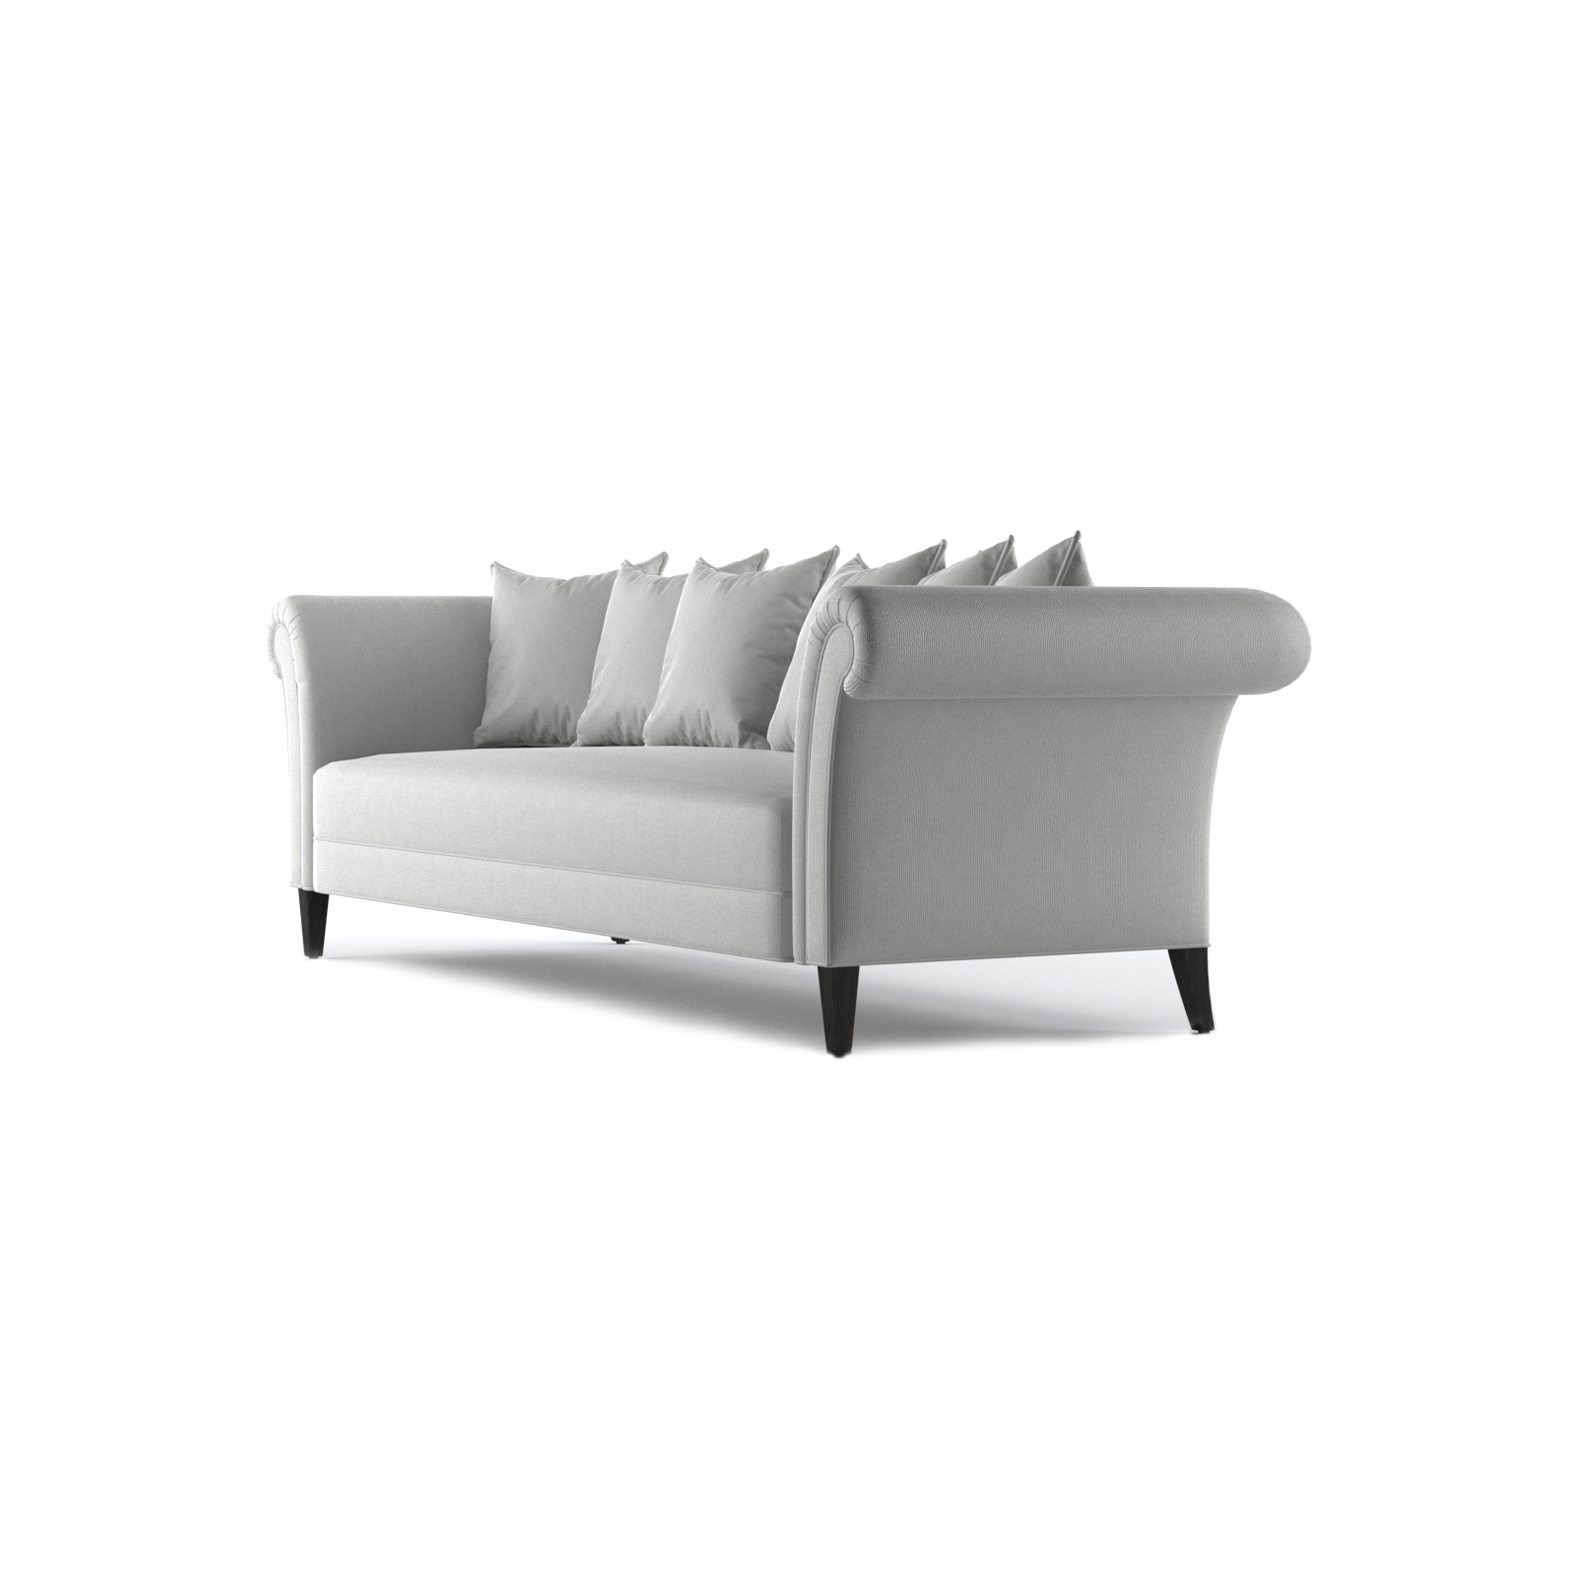 Baker Three and a Half Seater Sofa by Bonham & Bonham 02